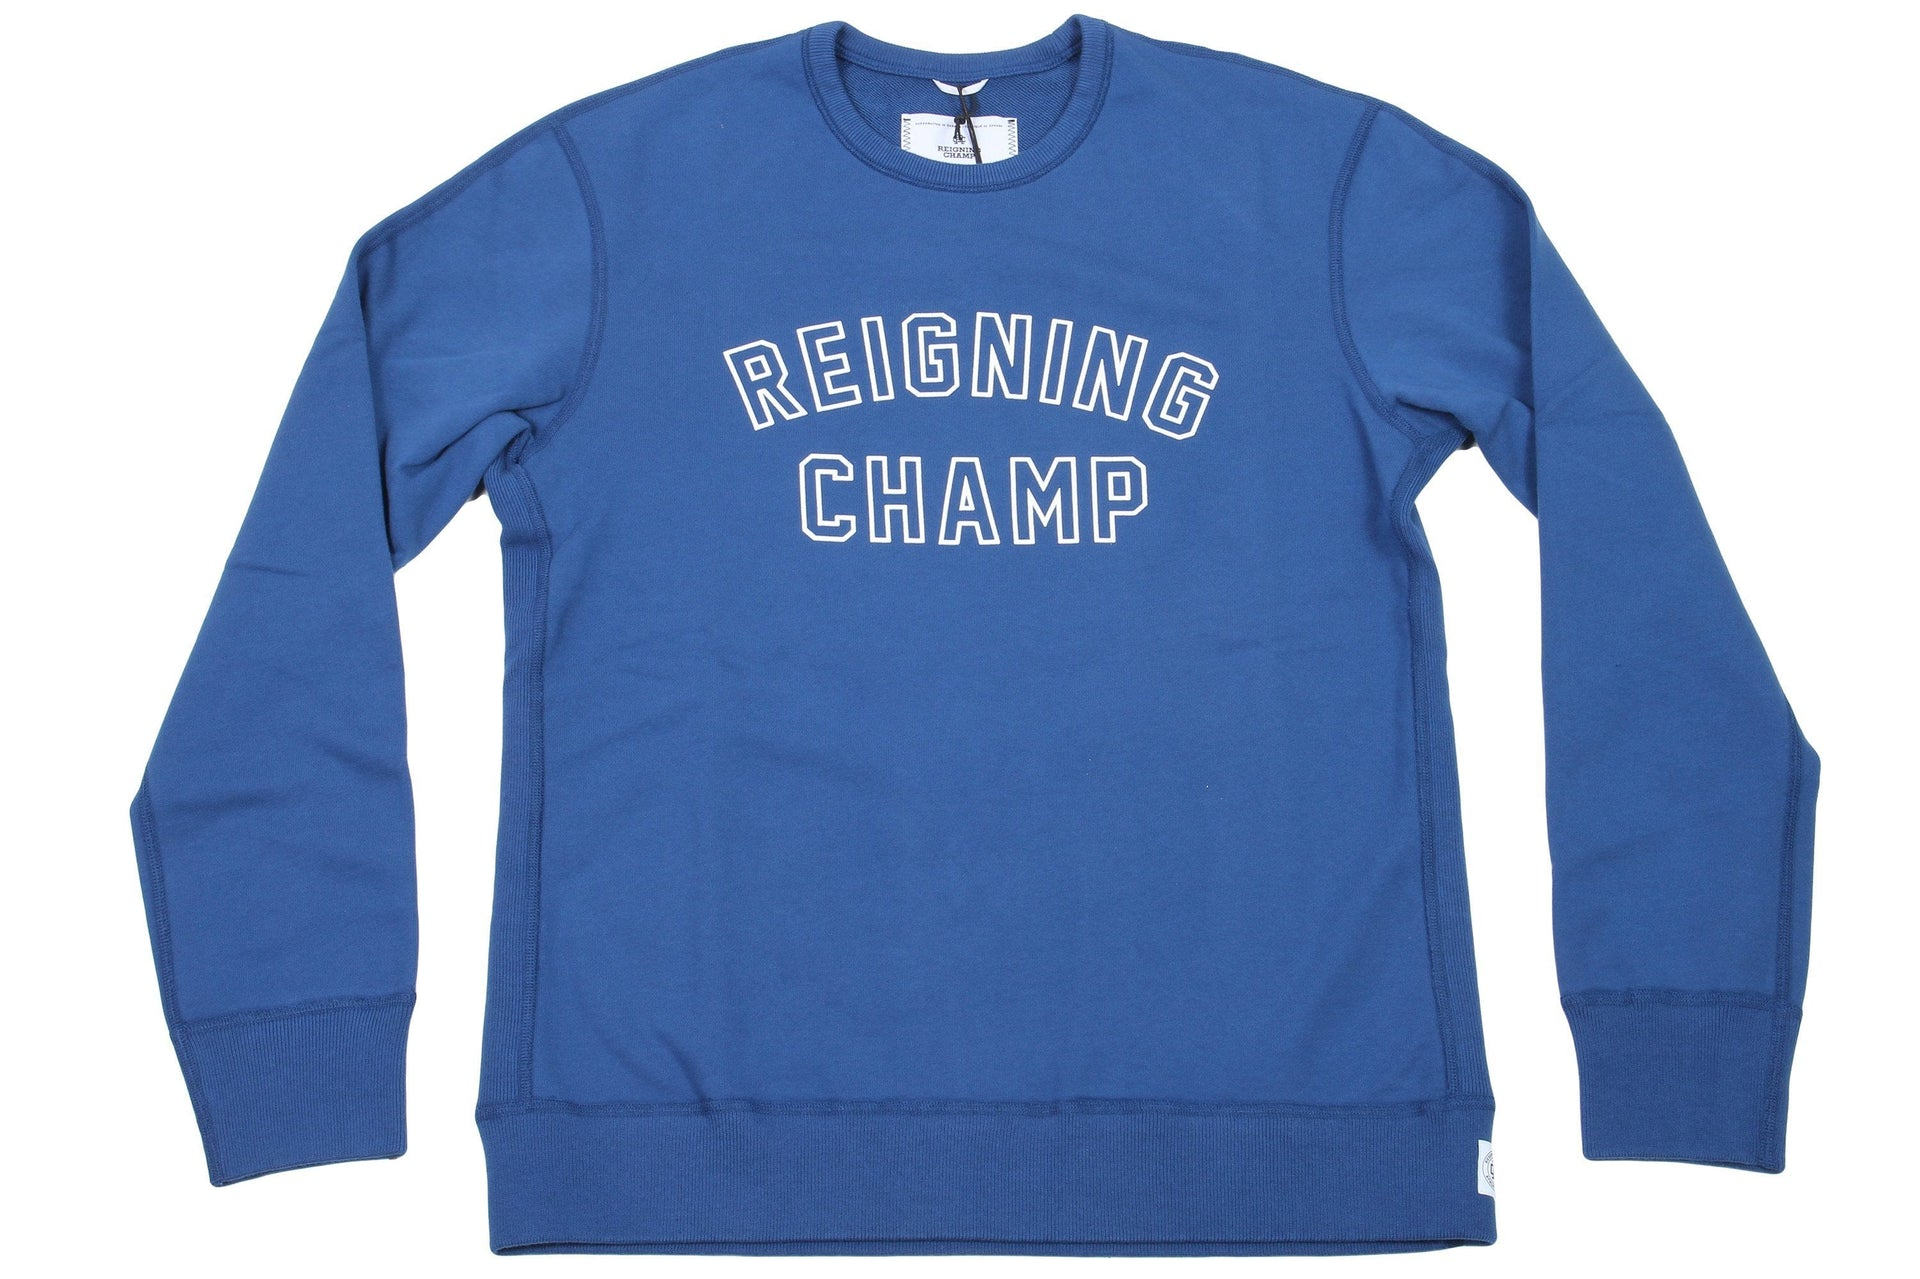 COURT BLUE/WHITE KNIT MID WT TERRY VARSITY CREWNECK RC-3480 MENS SOFTGOODS REIGNING CHAMP COURT BLUE/WHITE S RC-3480